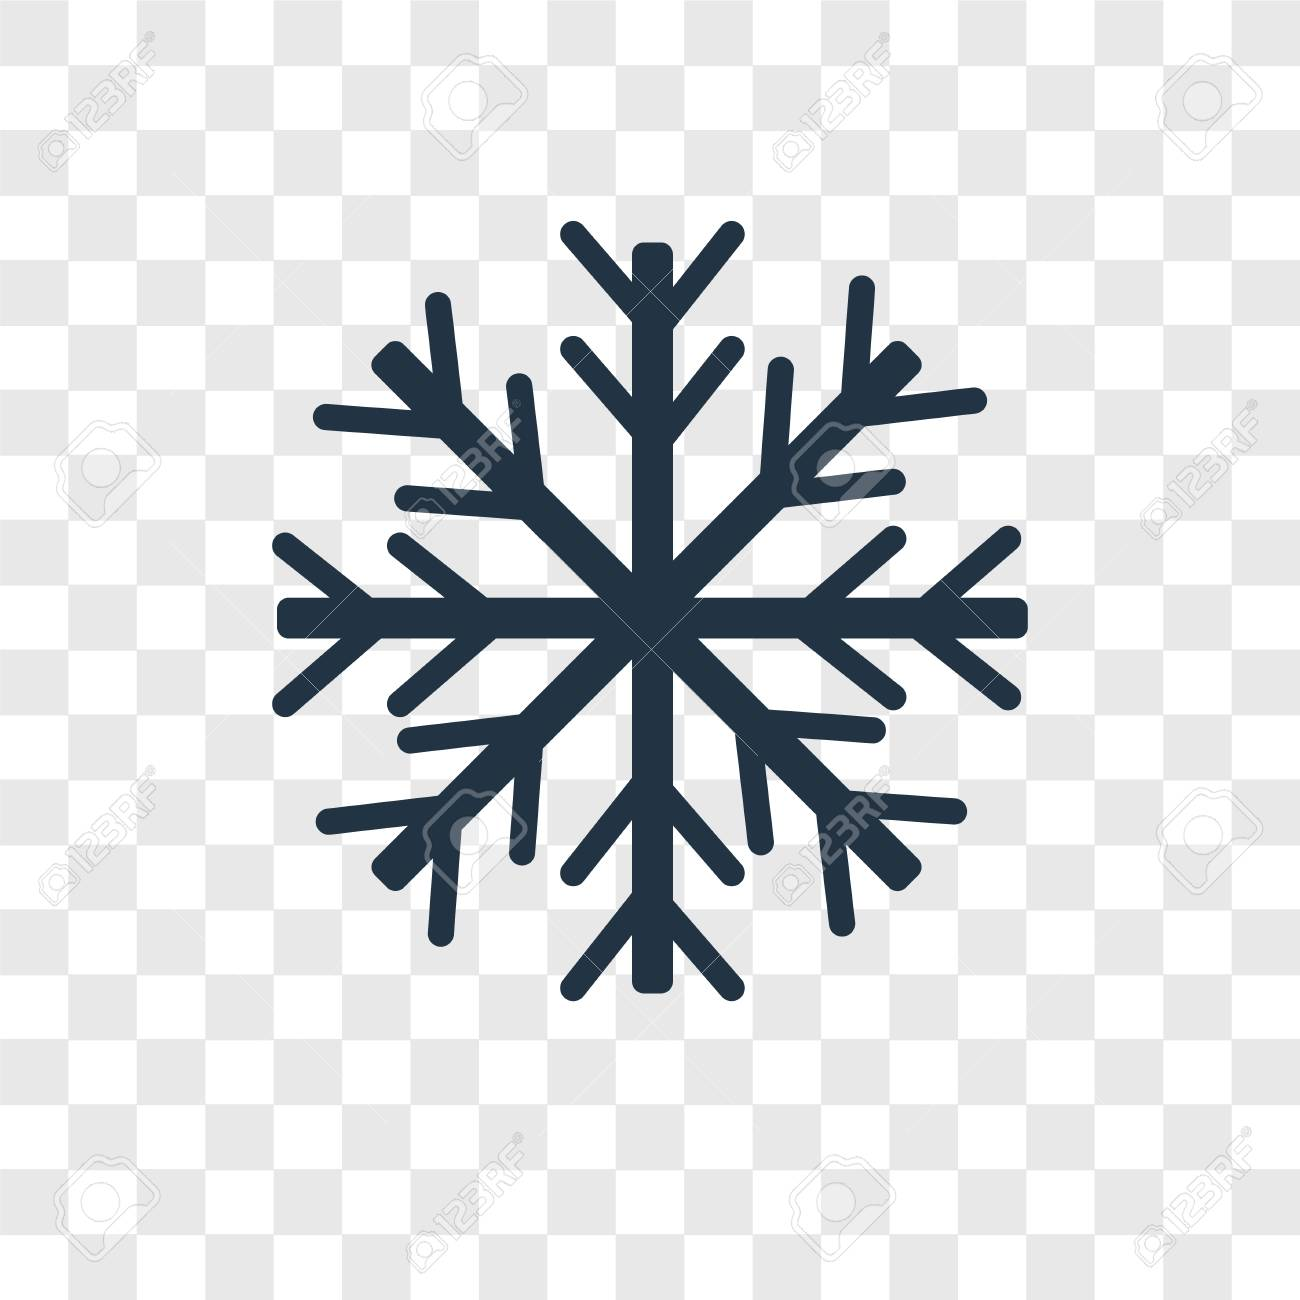 snowflake vector icon isolated on transparent background, snowflake..  royalty free cliparts, vectors, and stock illustration. image 112484874.  123rf